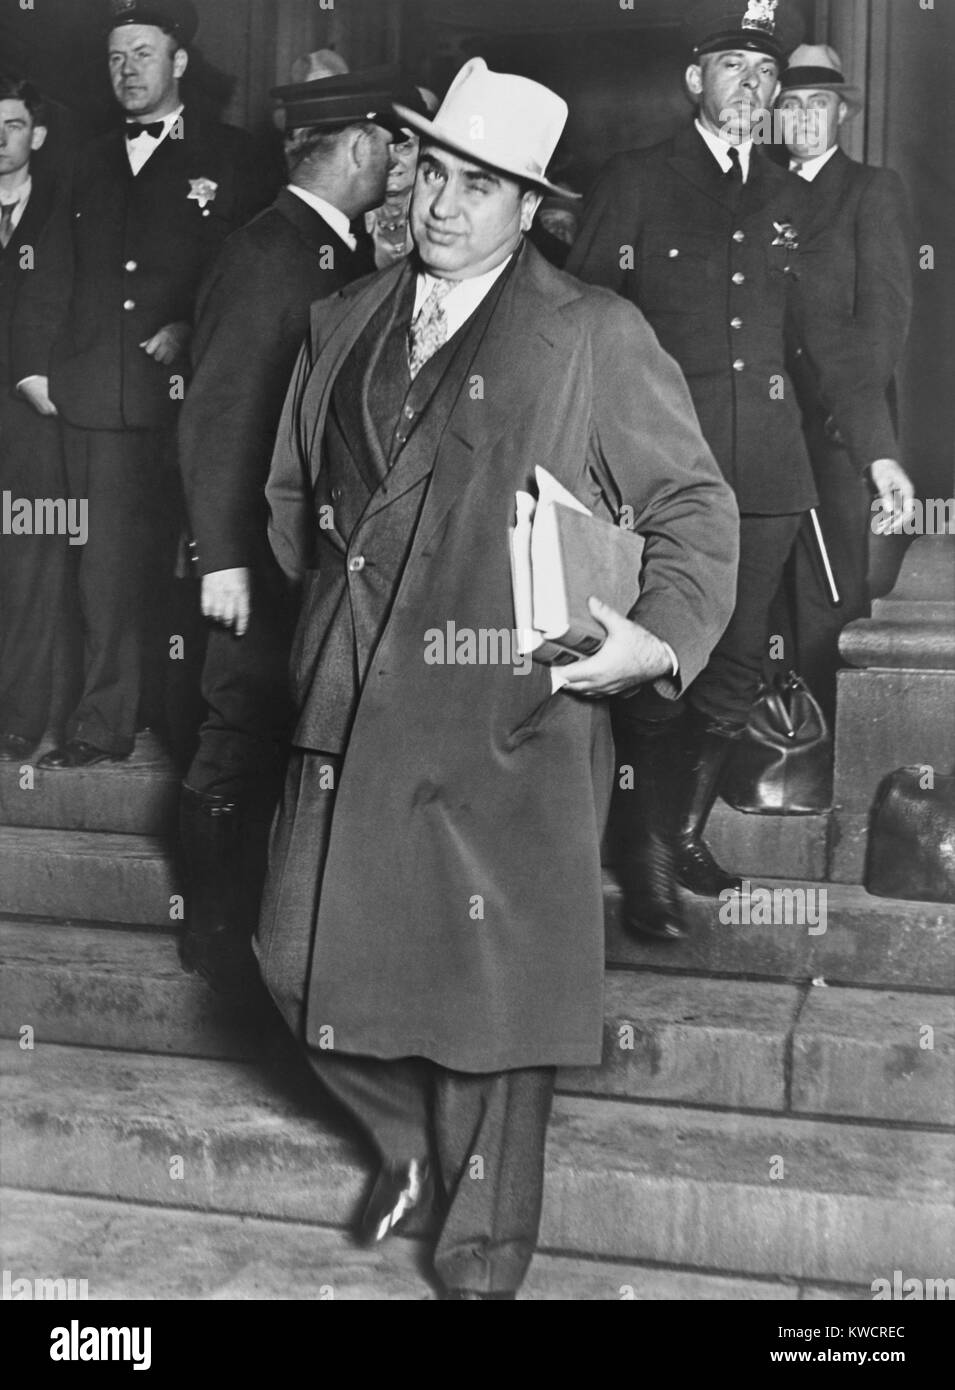 Al Capone, winks at photographers as he leaves Chicago's federal courthouse. October 14, 1931. The notorious Chicago Stock Photo